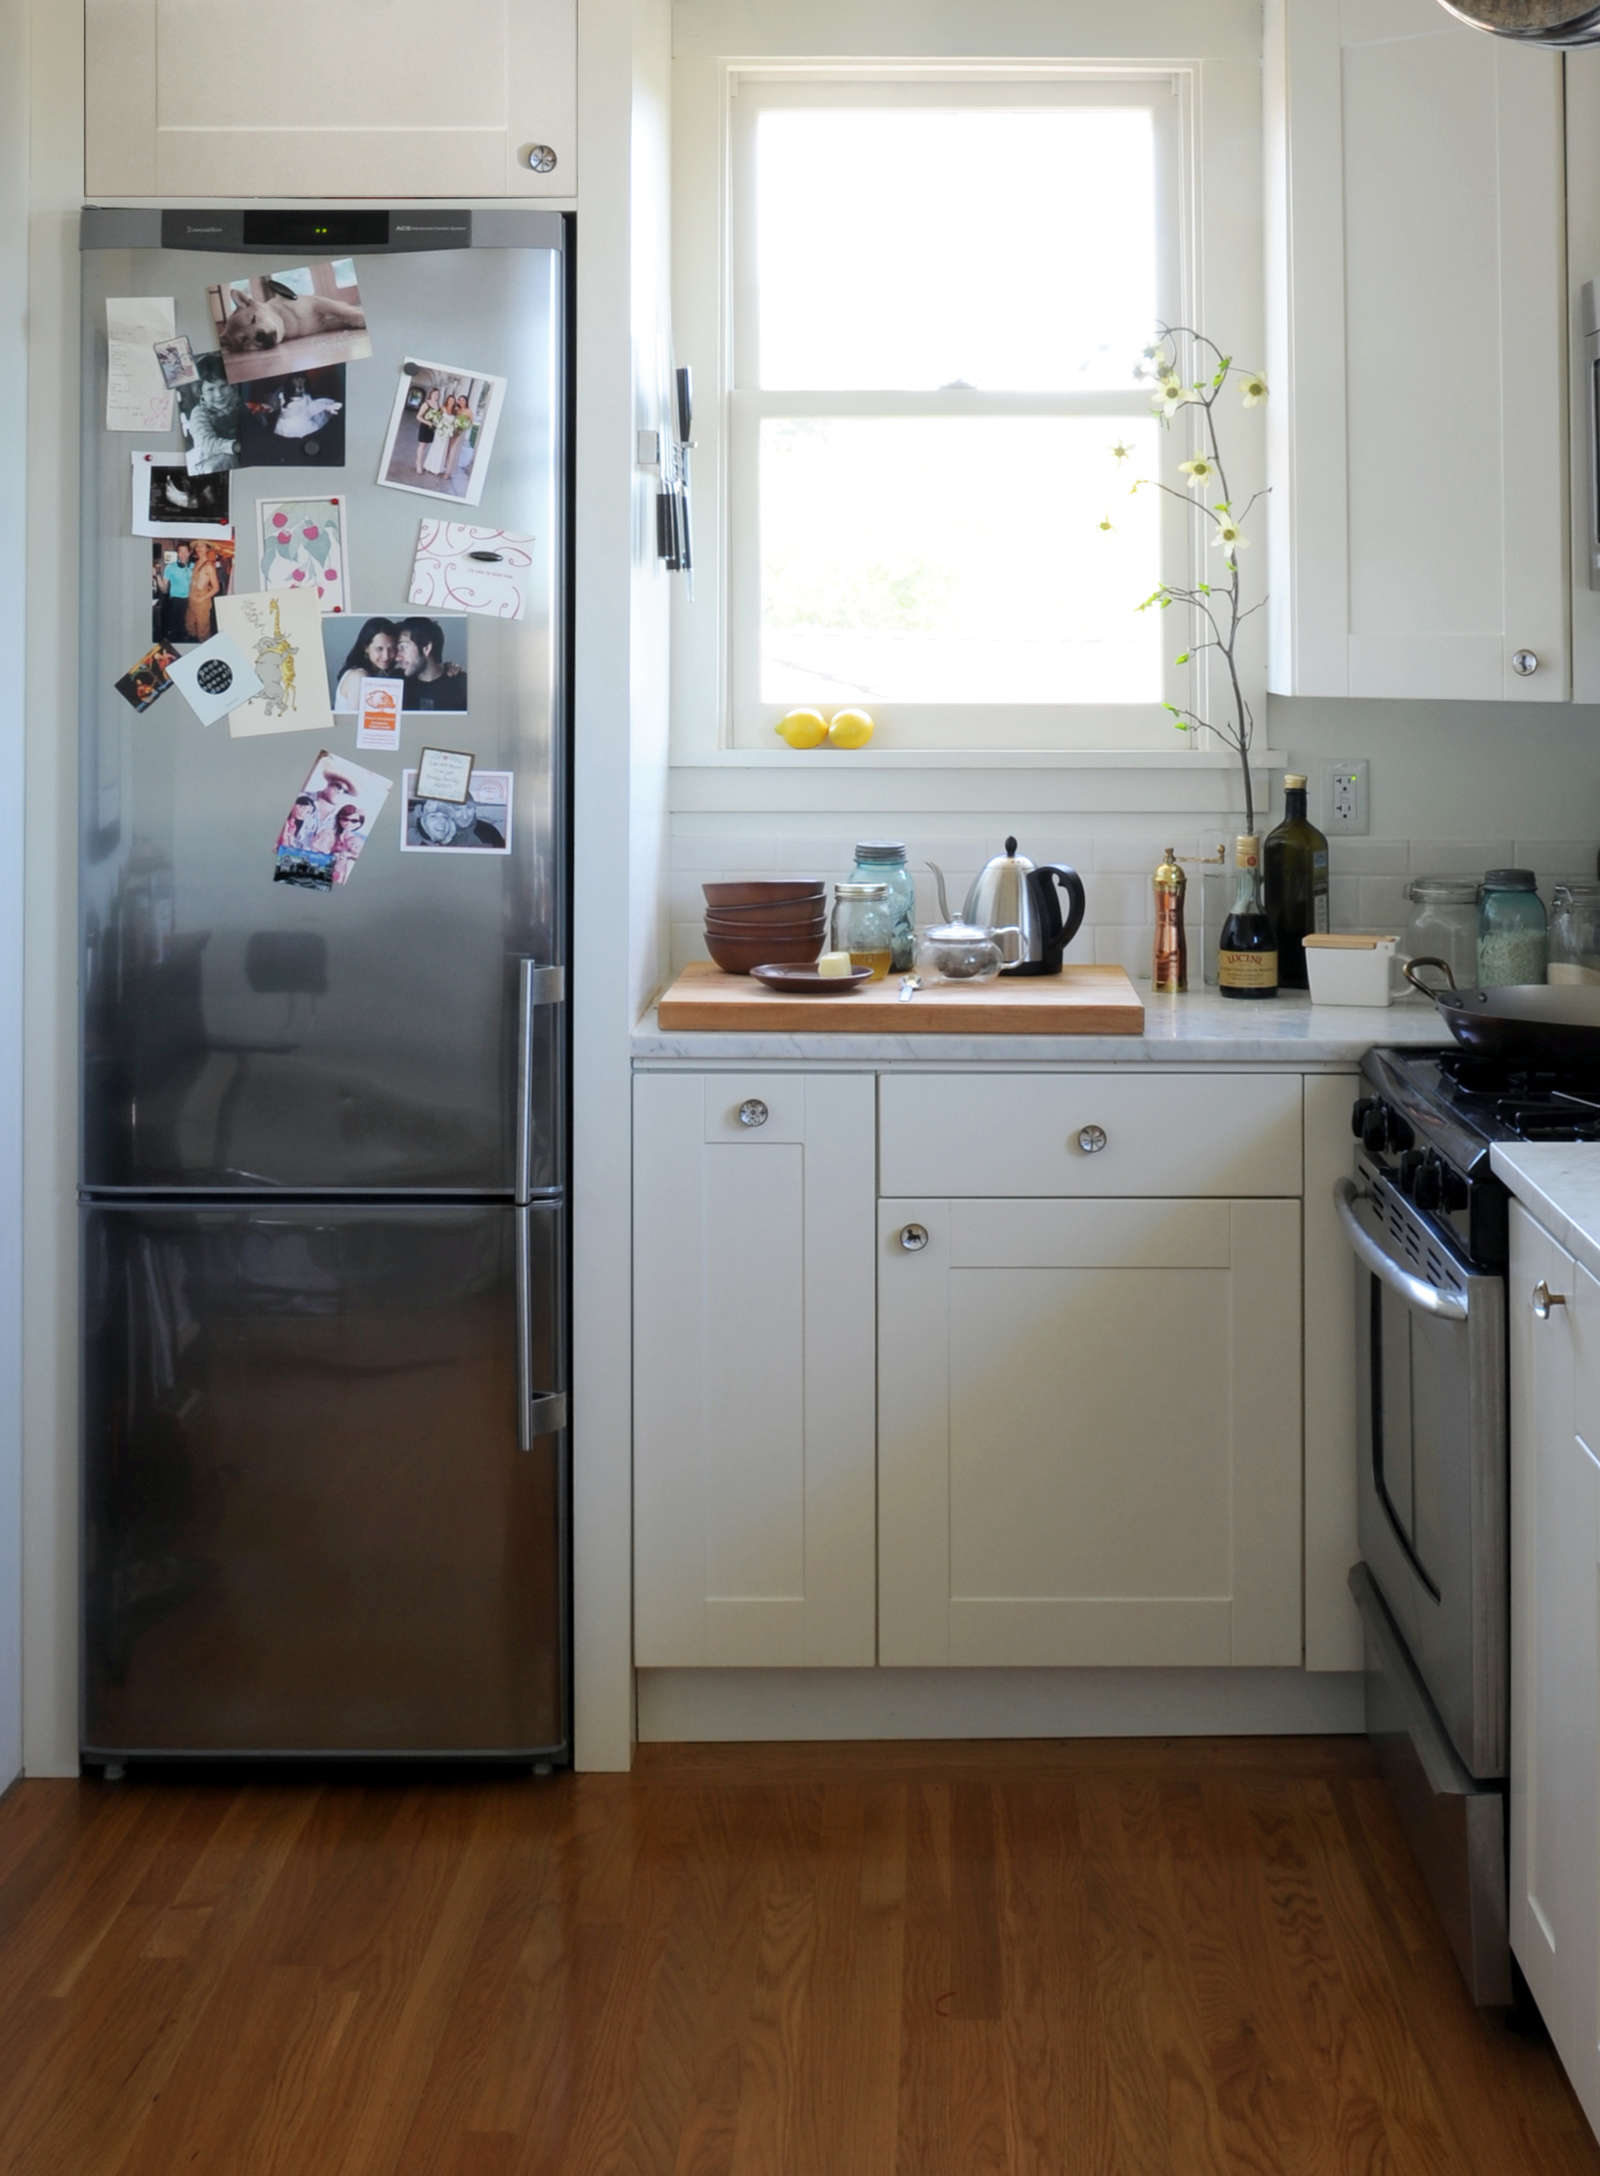 10 Easy Pieces Best Skinny Refrigerators